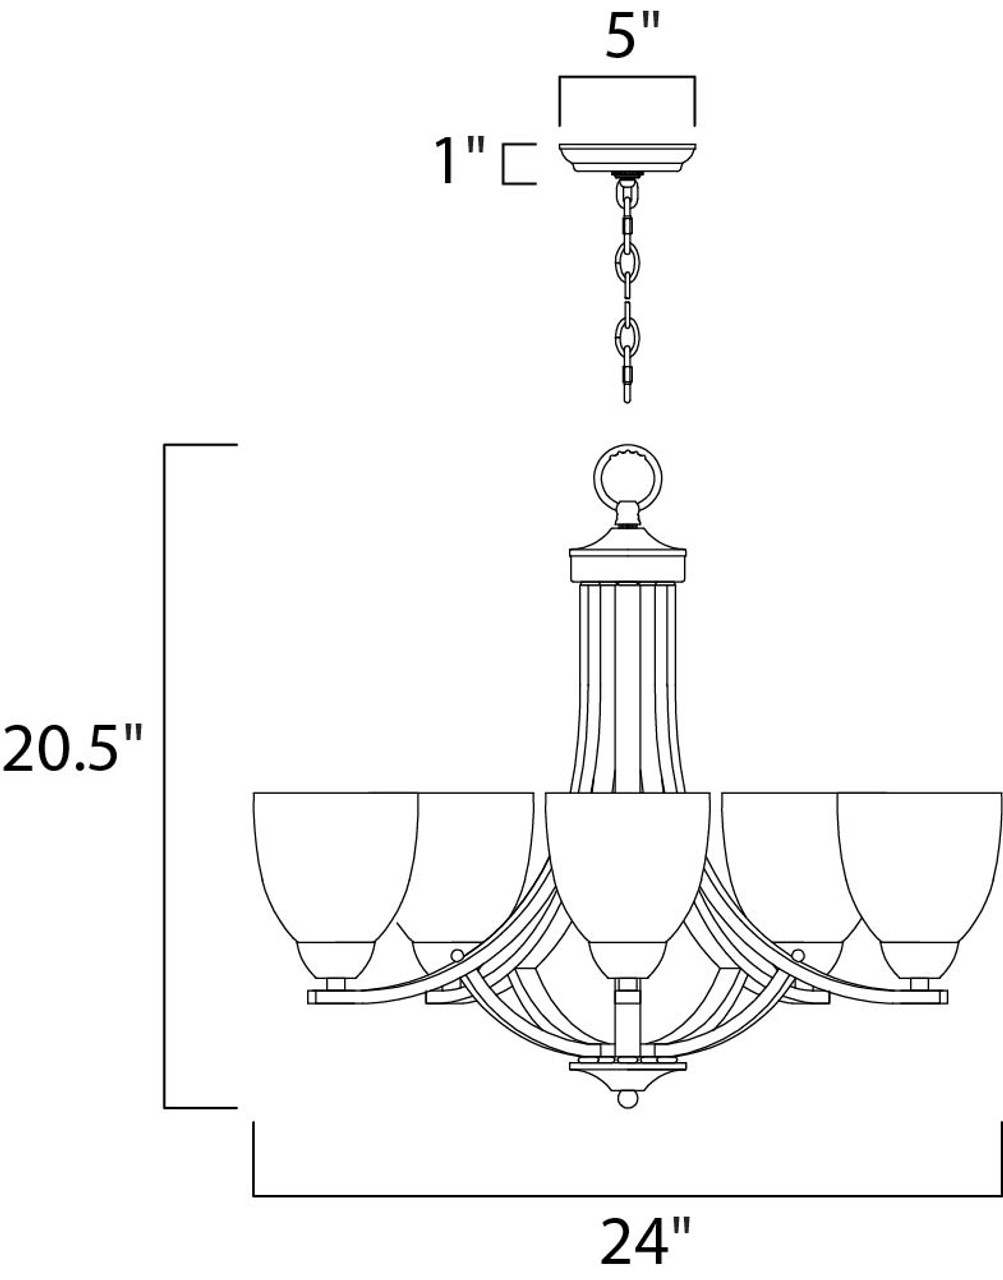 Axis 5-Light Single Tier Chandelier, Satin Nickel finish with Frosted Glass Shades, 120V, 300W, ETL Listed Dry (11225FTSN)